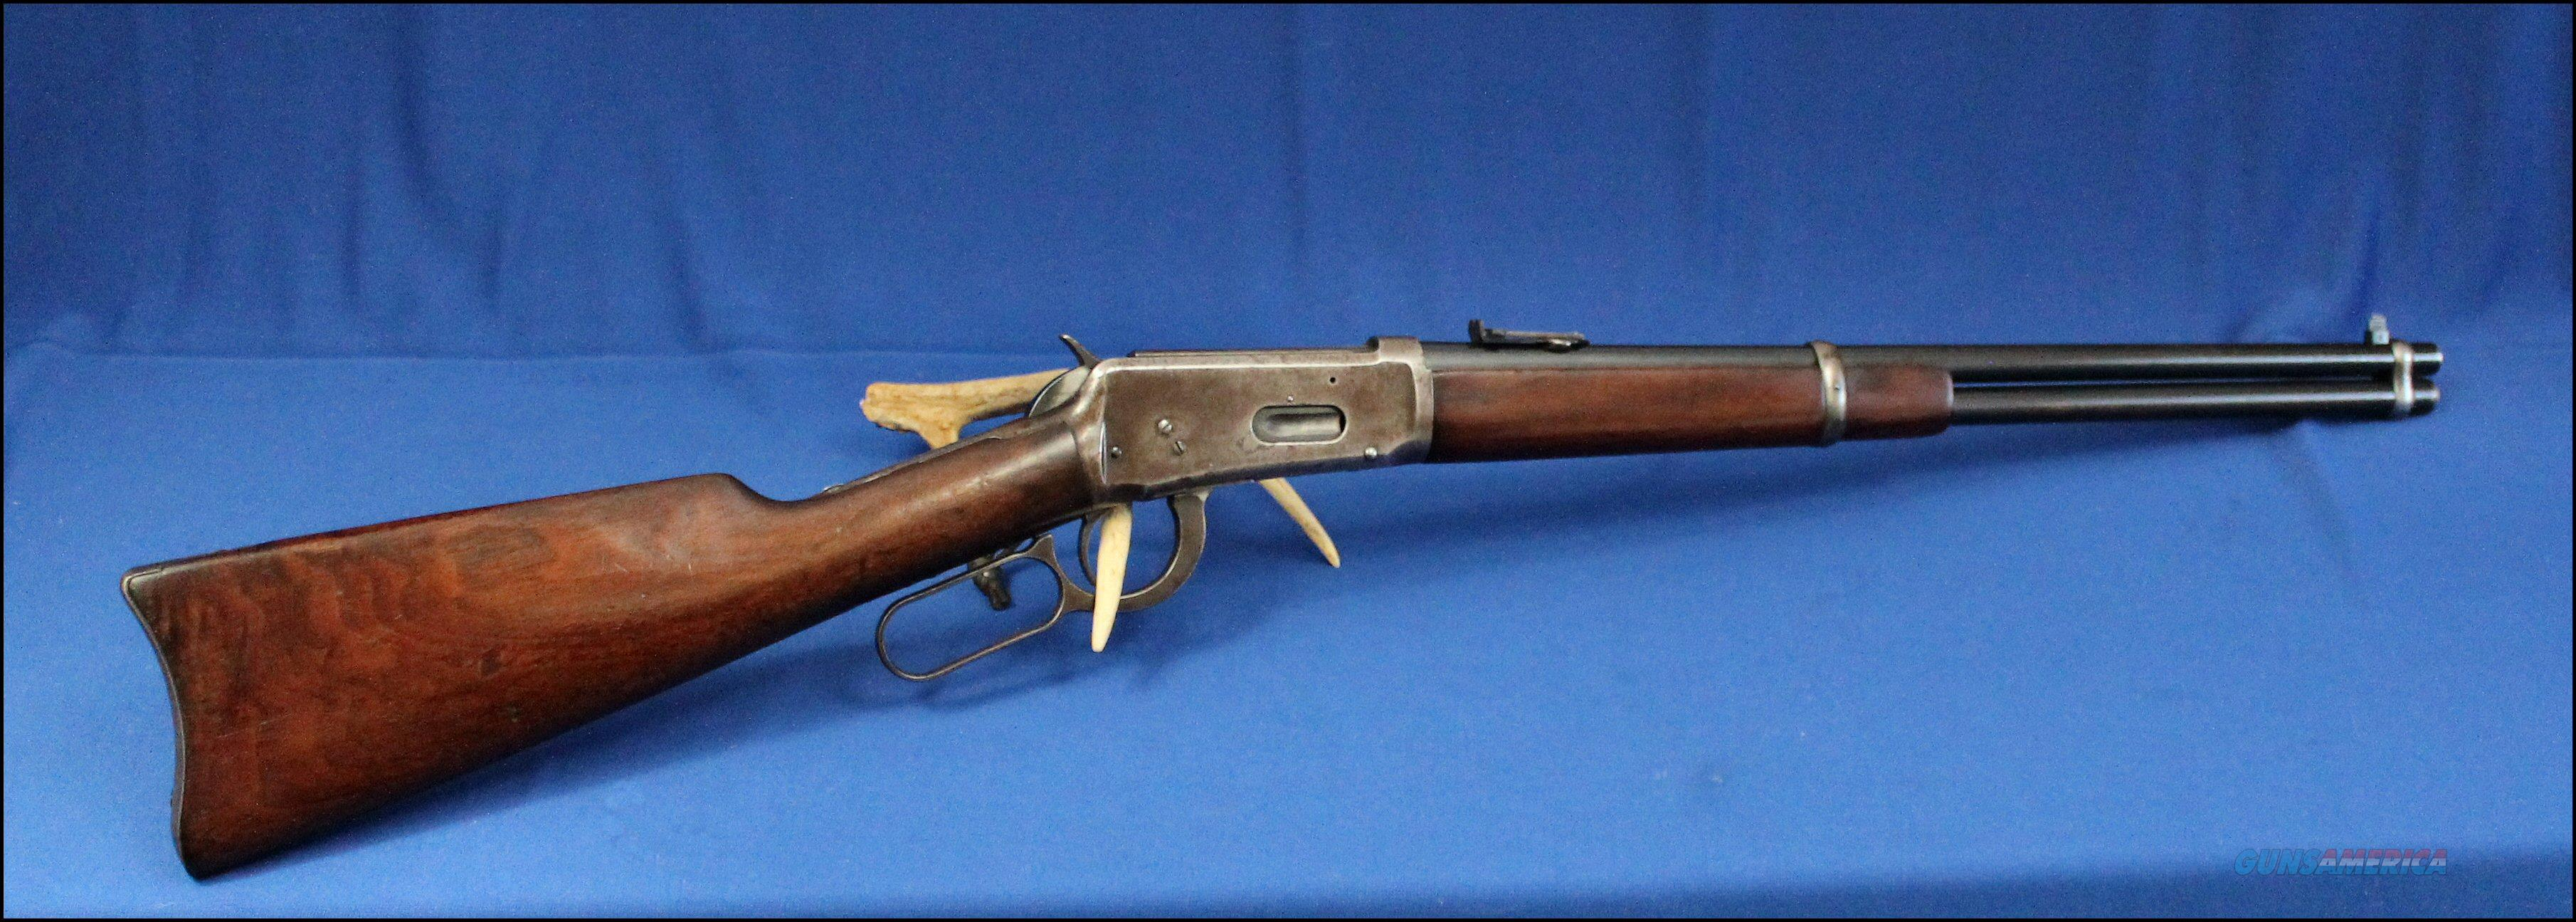 Winchester 1894 Saddle Ring Carbine SRC 30-30   Mfg. 1915 Pre War   Guns > Rifles > Winchester Rifles - Modern Lever > Model 94 > Pre-64